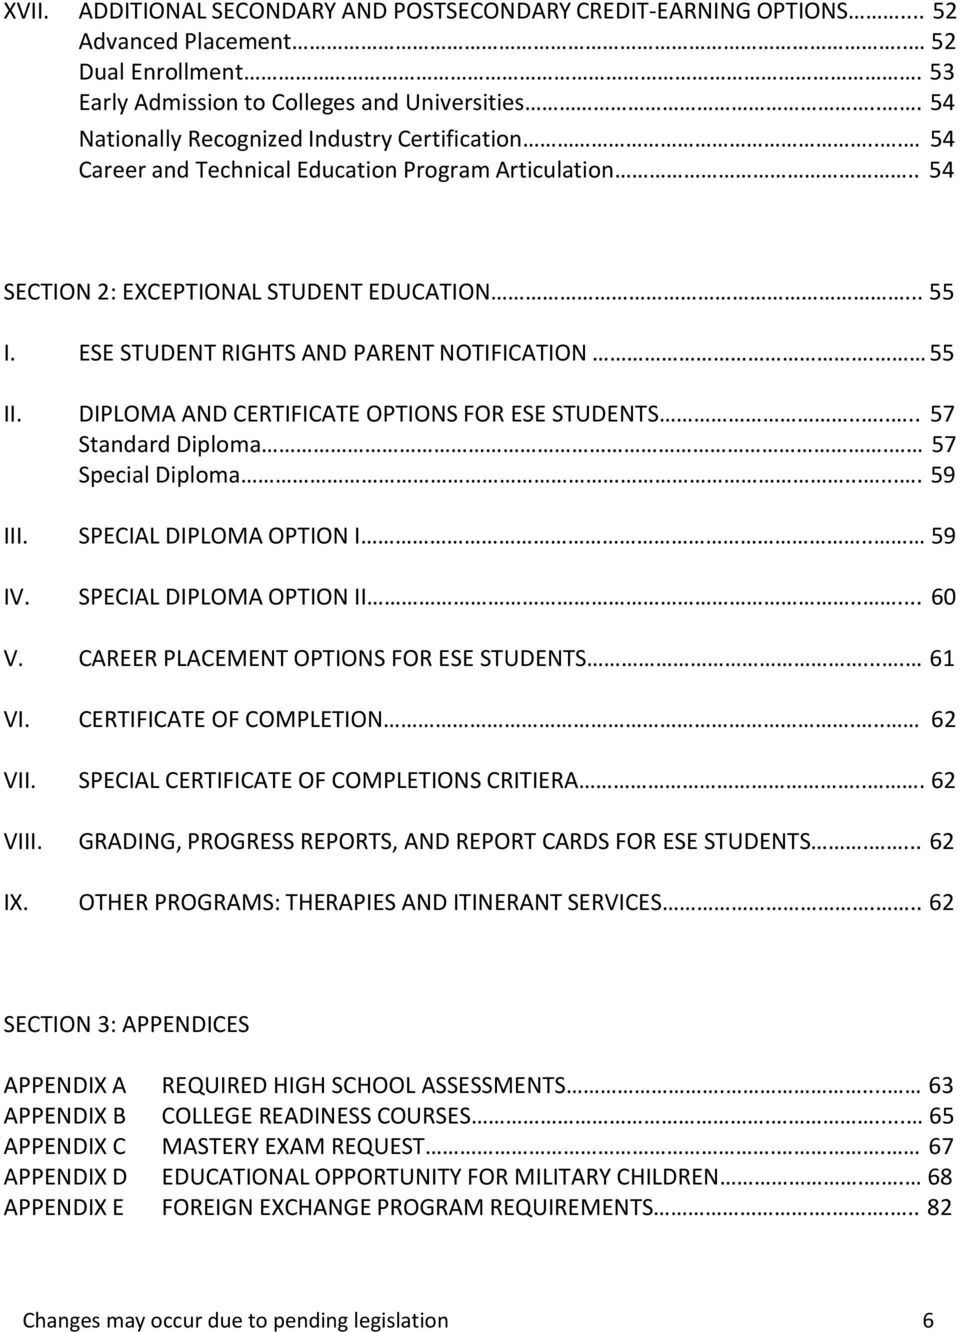 ESE STUDENT RIGHTS AND PARENT NOTIFICATION. 55 II. DIPLOMA AND CERTIFICATE OPTIONS FOR ESE STUDENTS...... 57 Standard Diploma. 57 Special Diploma....... 59 III. SPECIAL DIPLOMA OPTION I.. 59 IV.